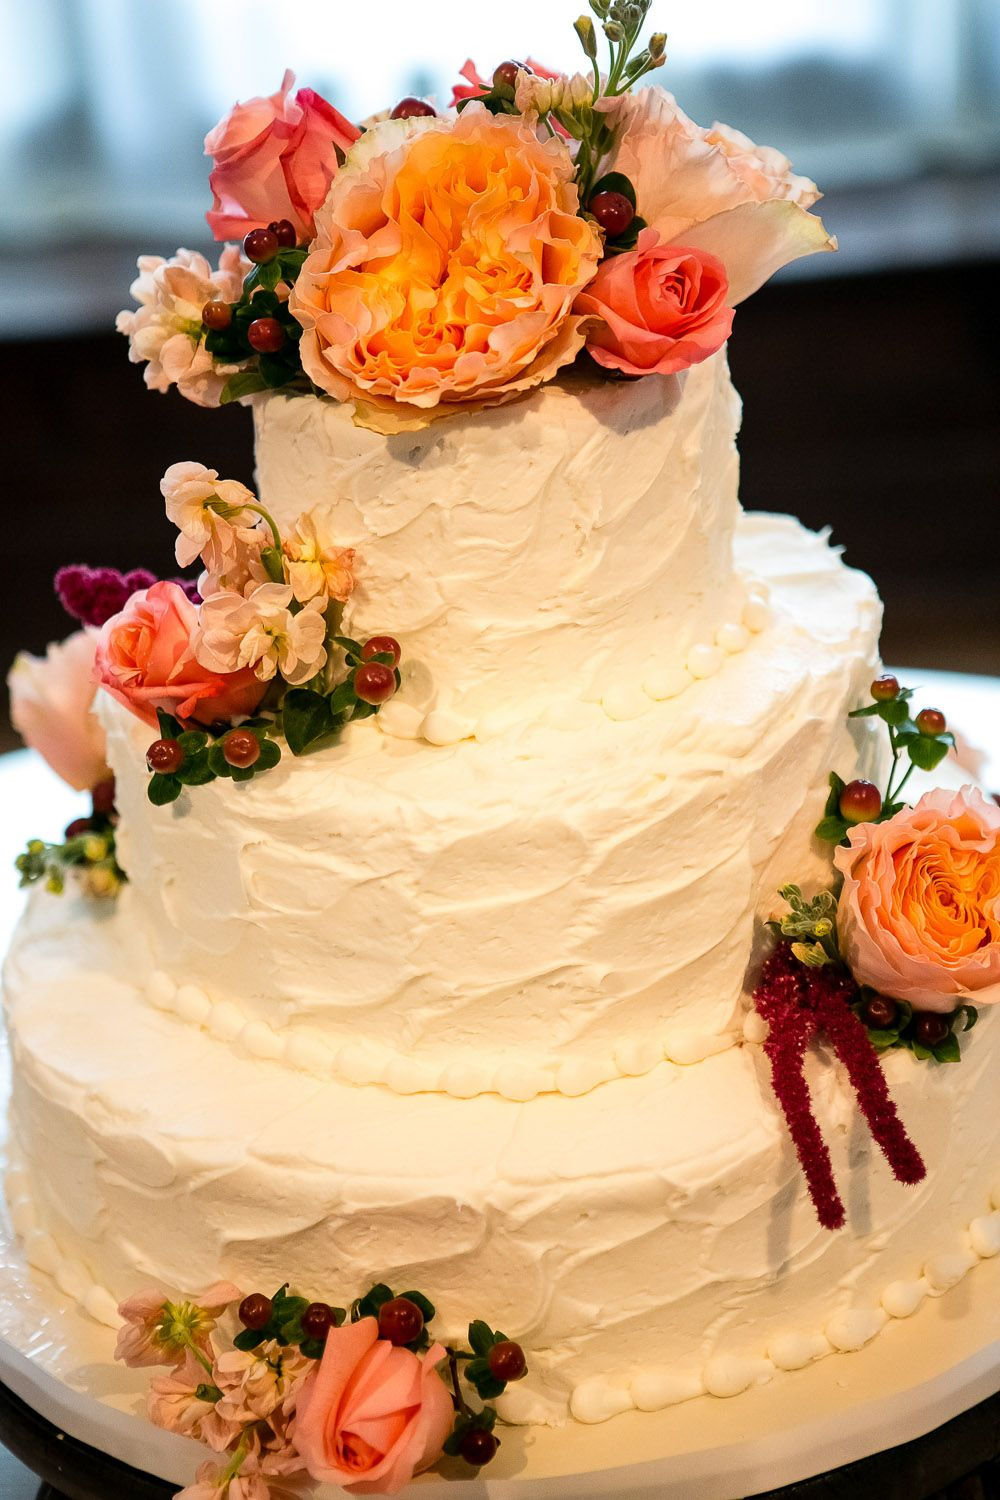 Fresh Cakes! Floral Inspiration for Your Wedding from the